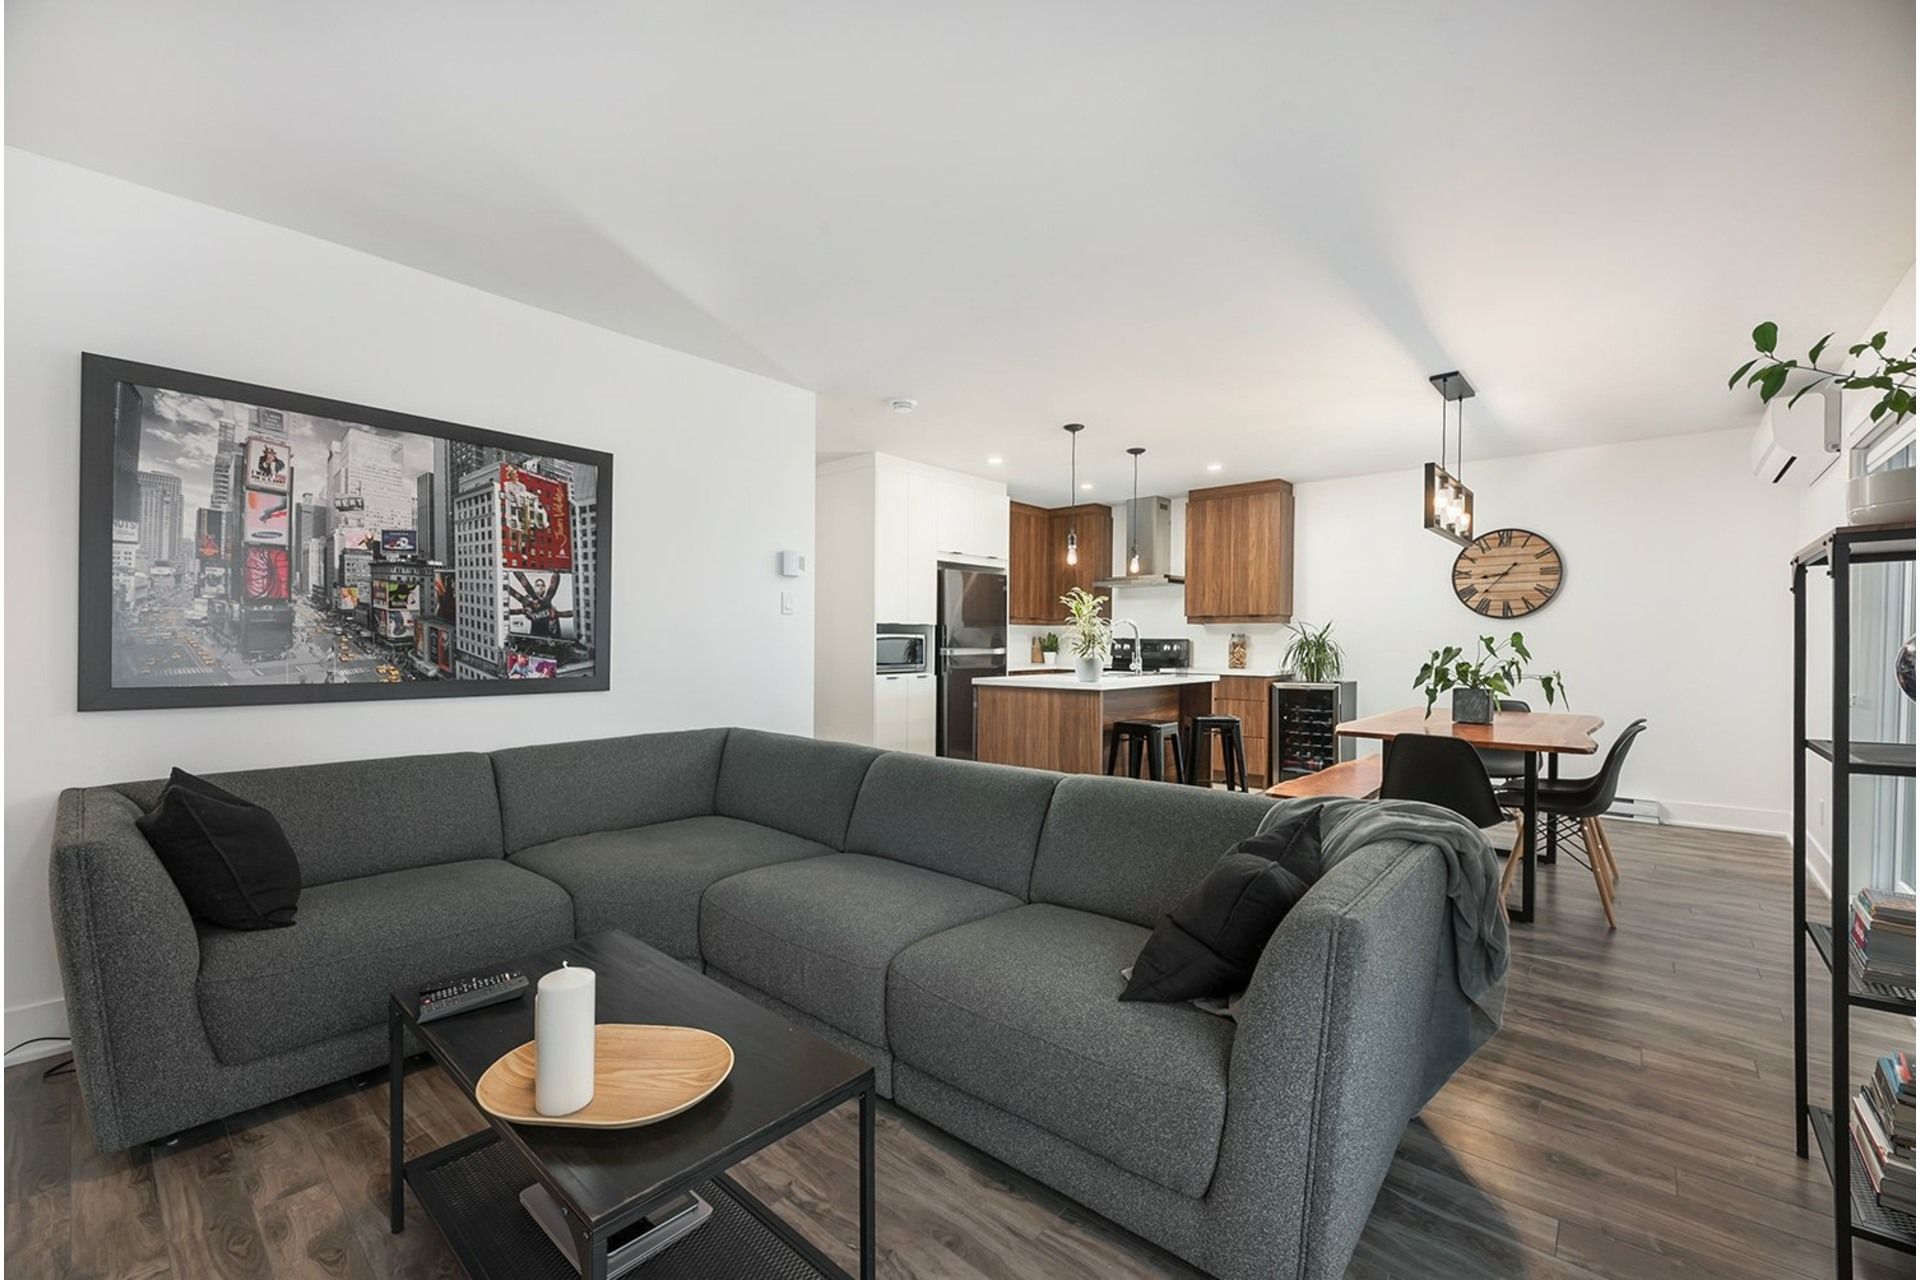 image 11 - Apartment For sale Saint-Philippe - 6 rooms